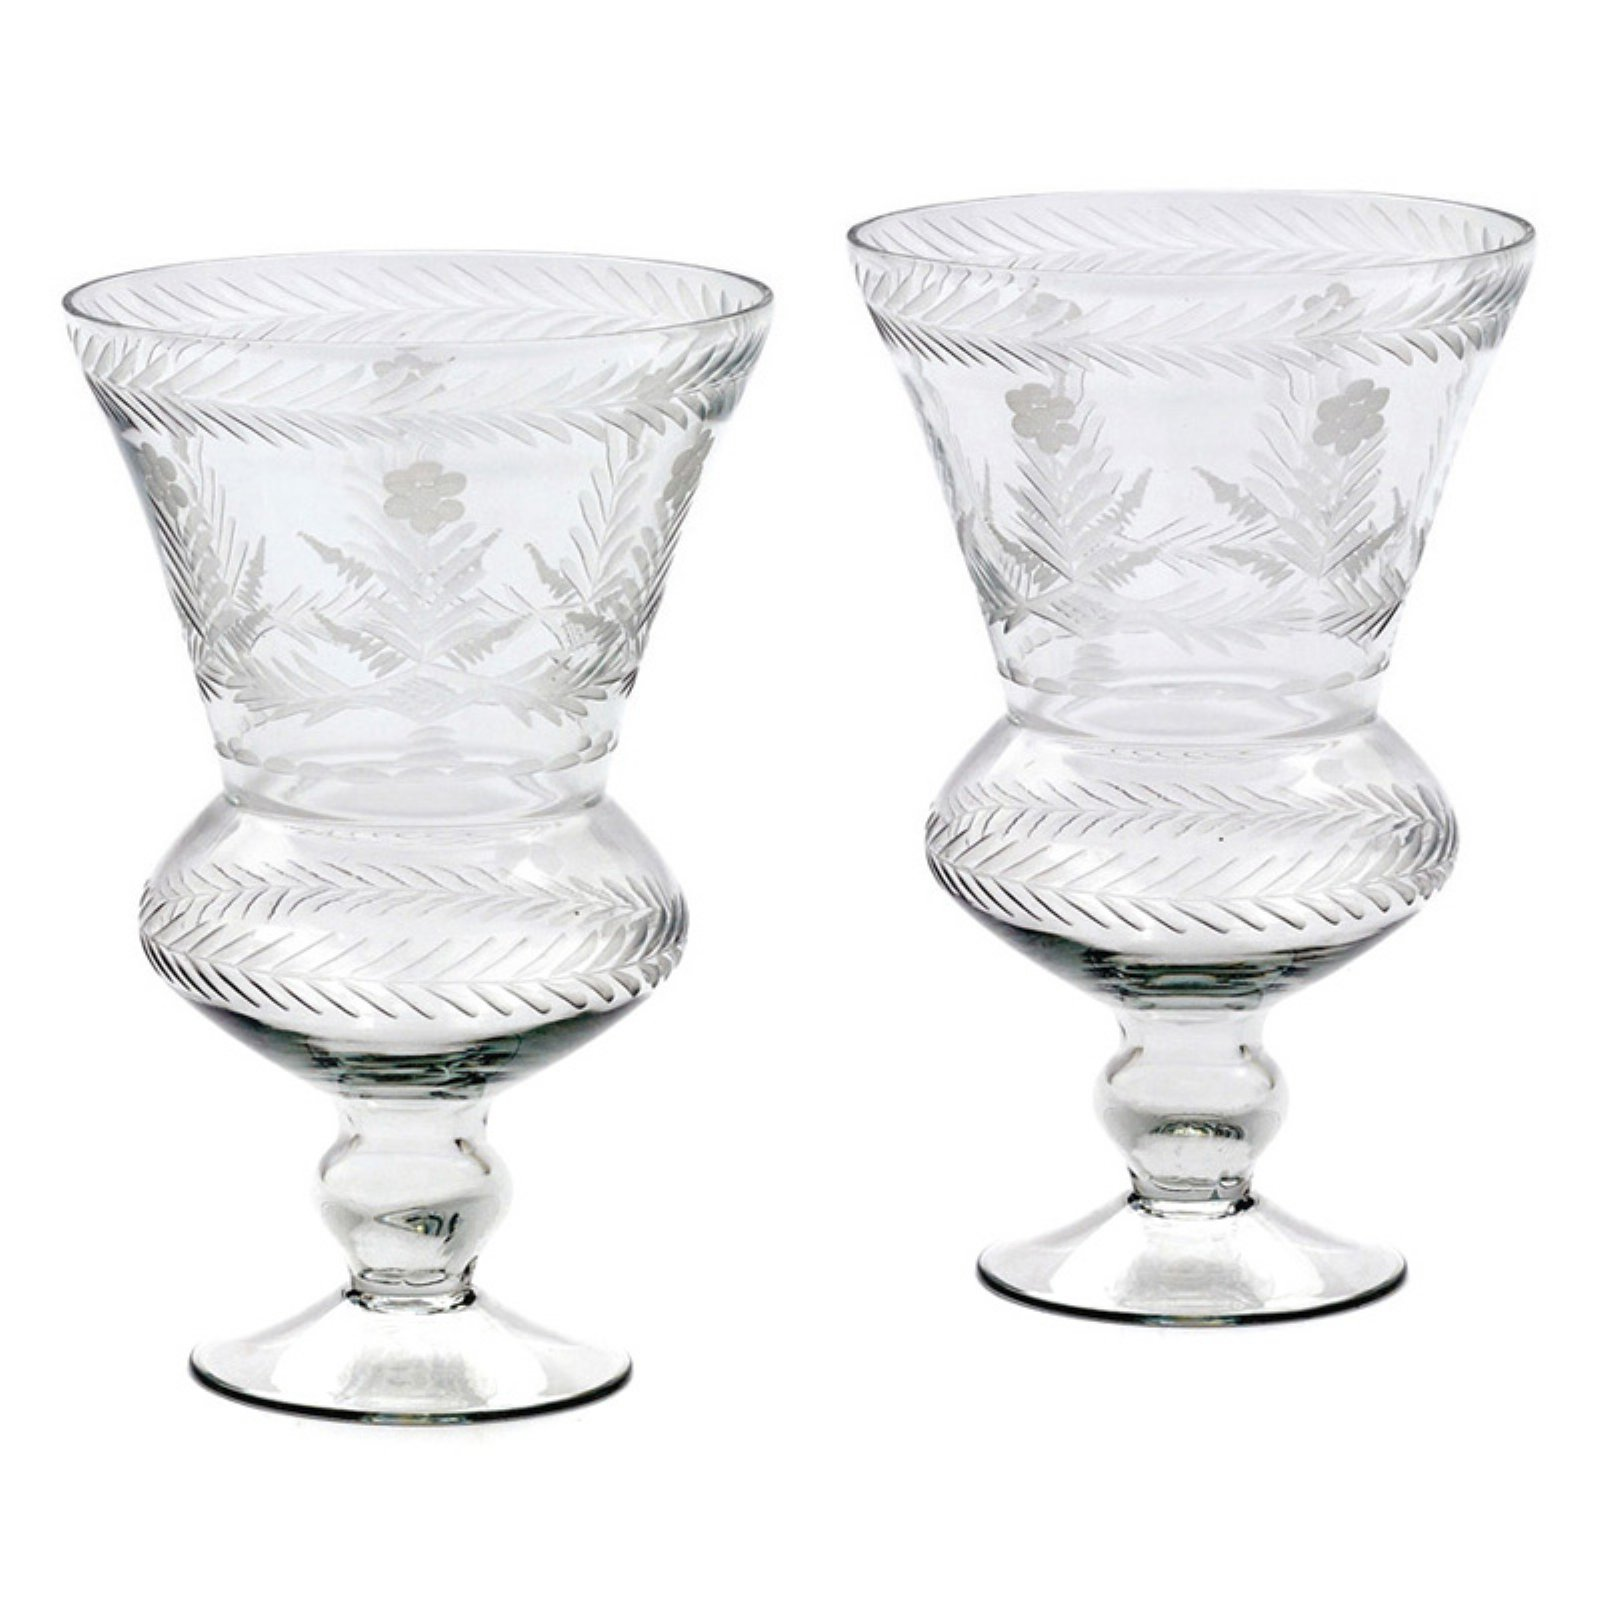 Hip Vintage Amsterdam Hurricane Candle Holder - Set of 2